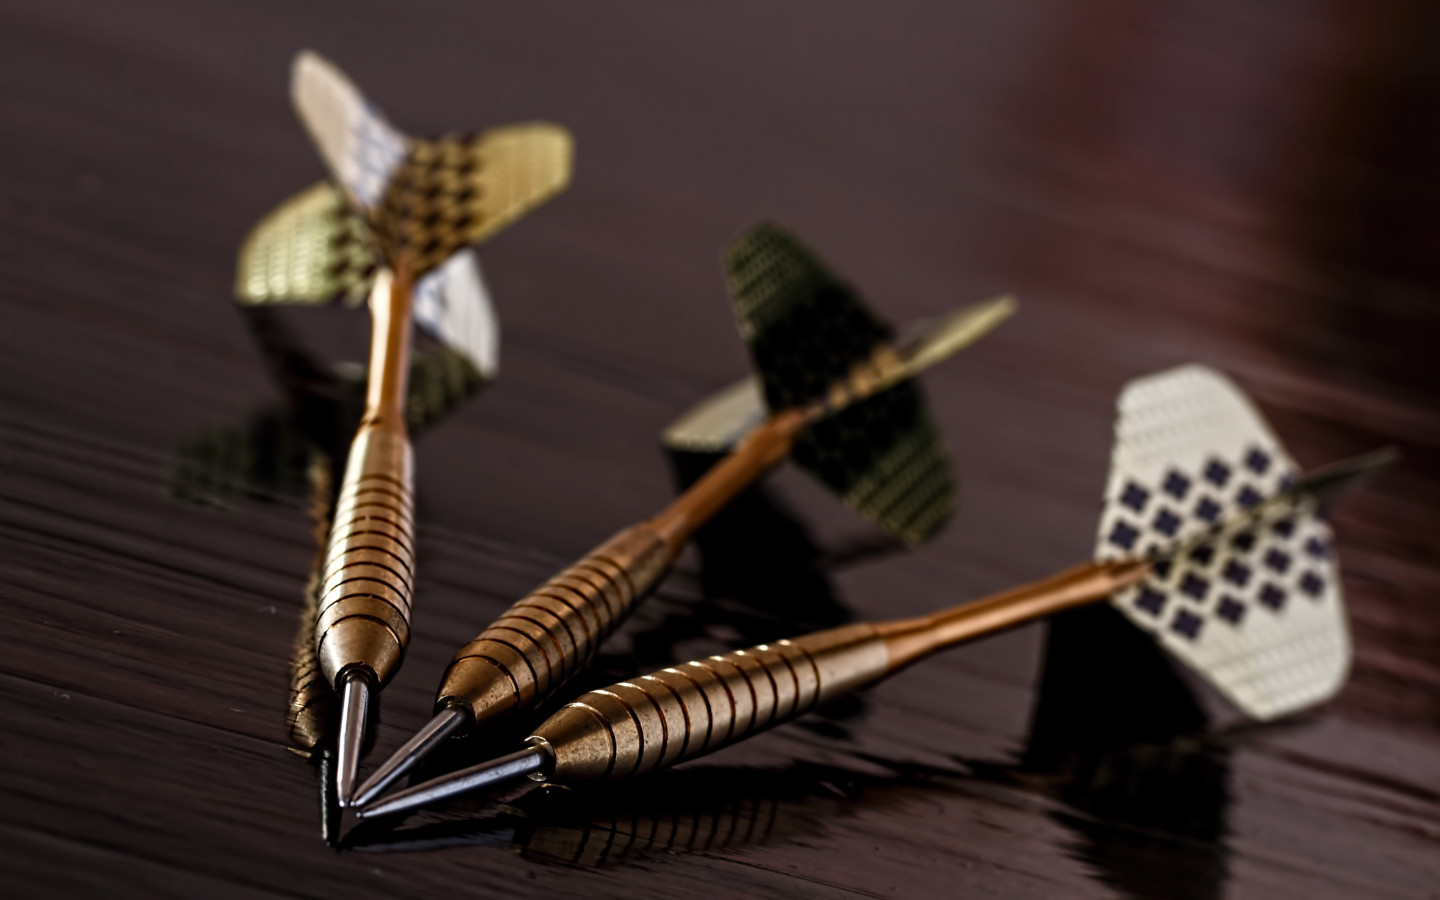 Darts arrows | 1440x900 wallpaper